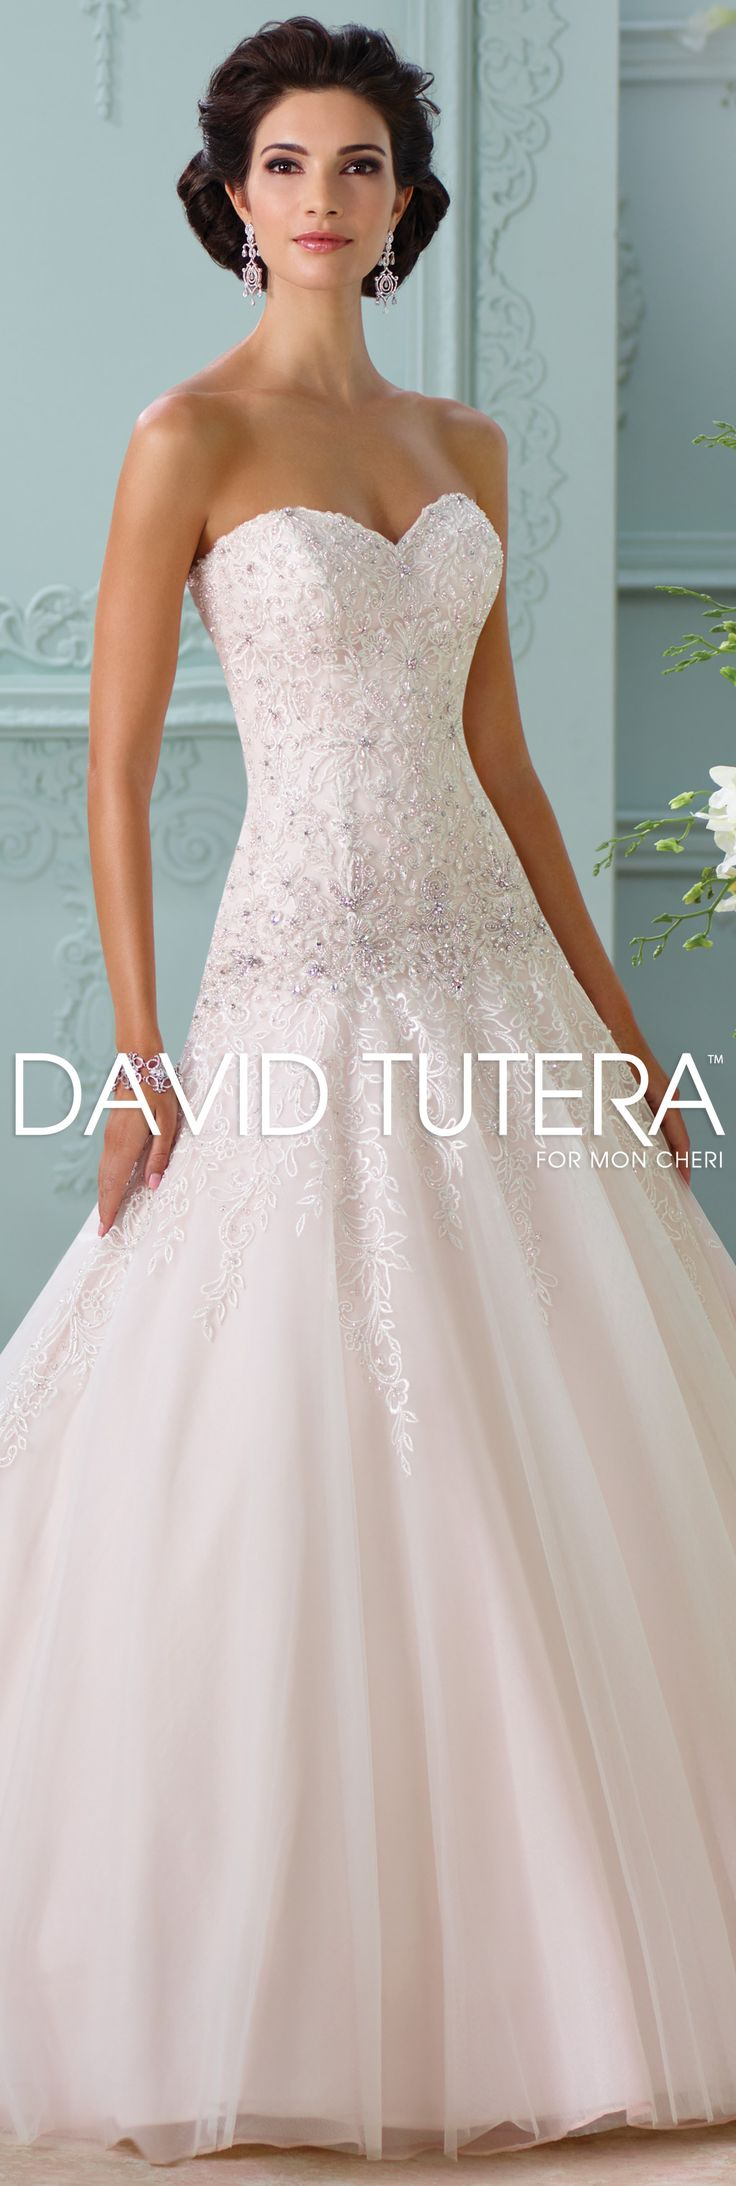 The David Tutera for Mon Cheri Spring 2016 Wedding Gown Collection - Style No. 116214 Ora #laceweddingdresses